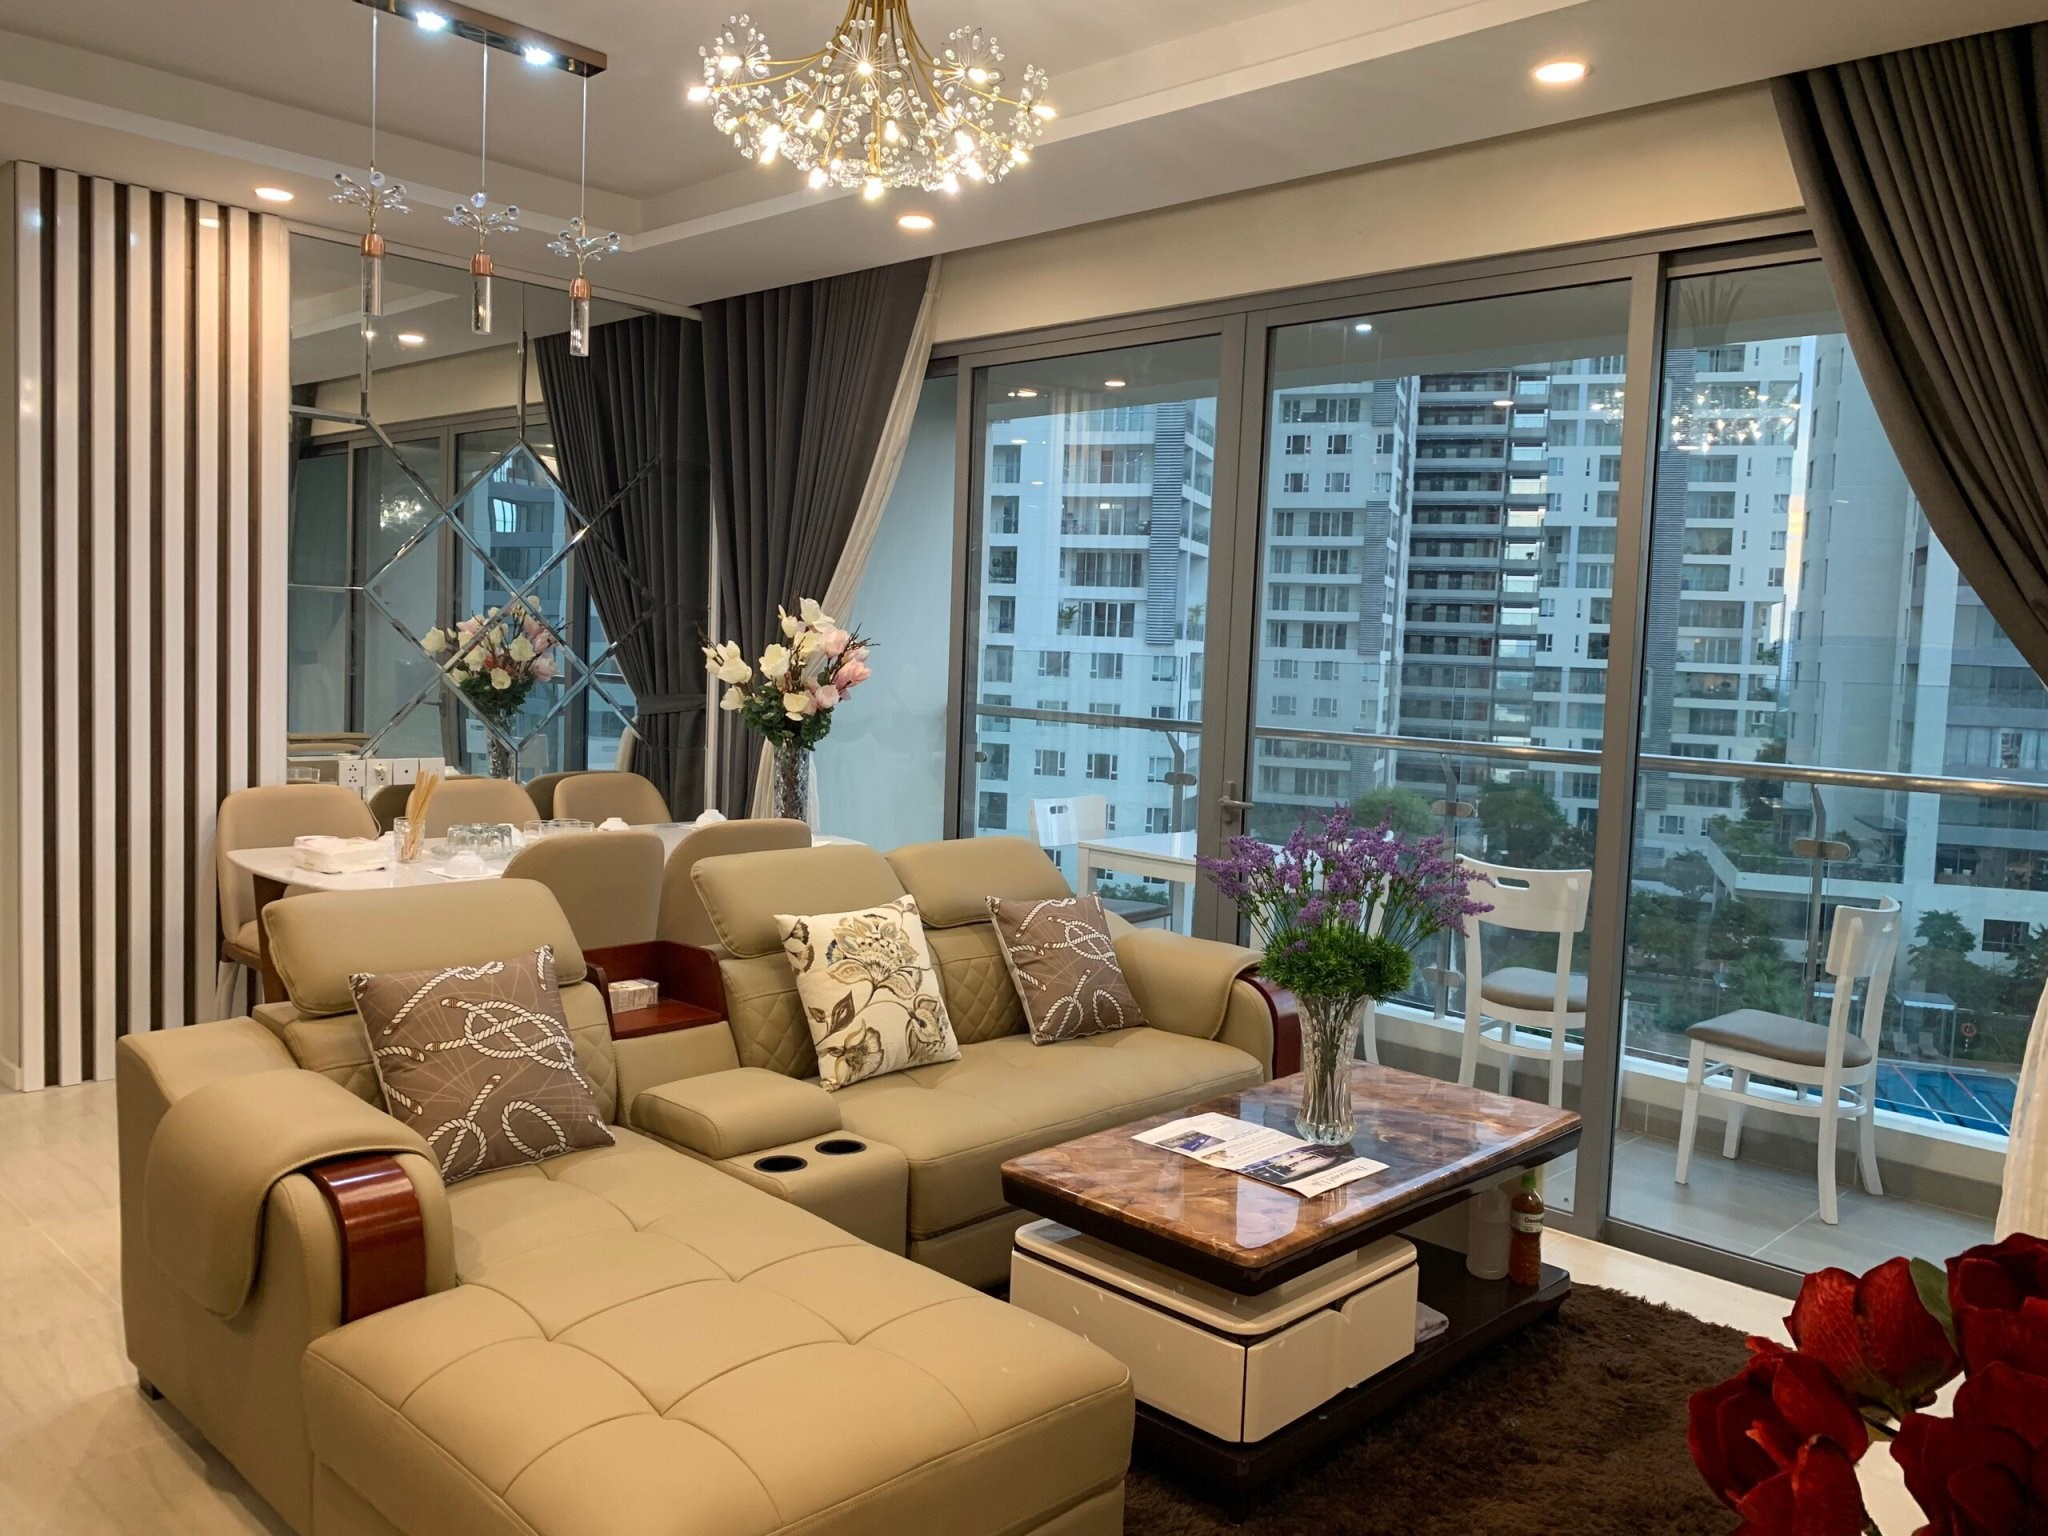 DI0220 - Diamond Island Apartment For Rent & Sale in Ho Chi Minh City - 2 bedroom